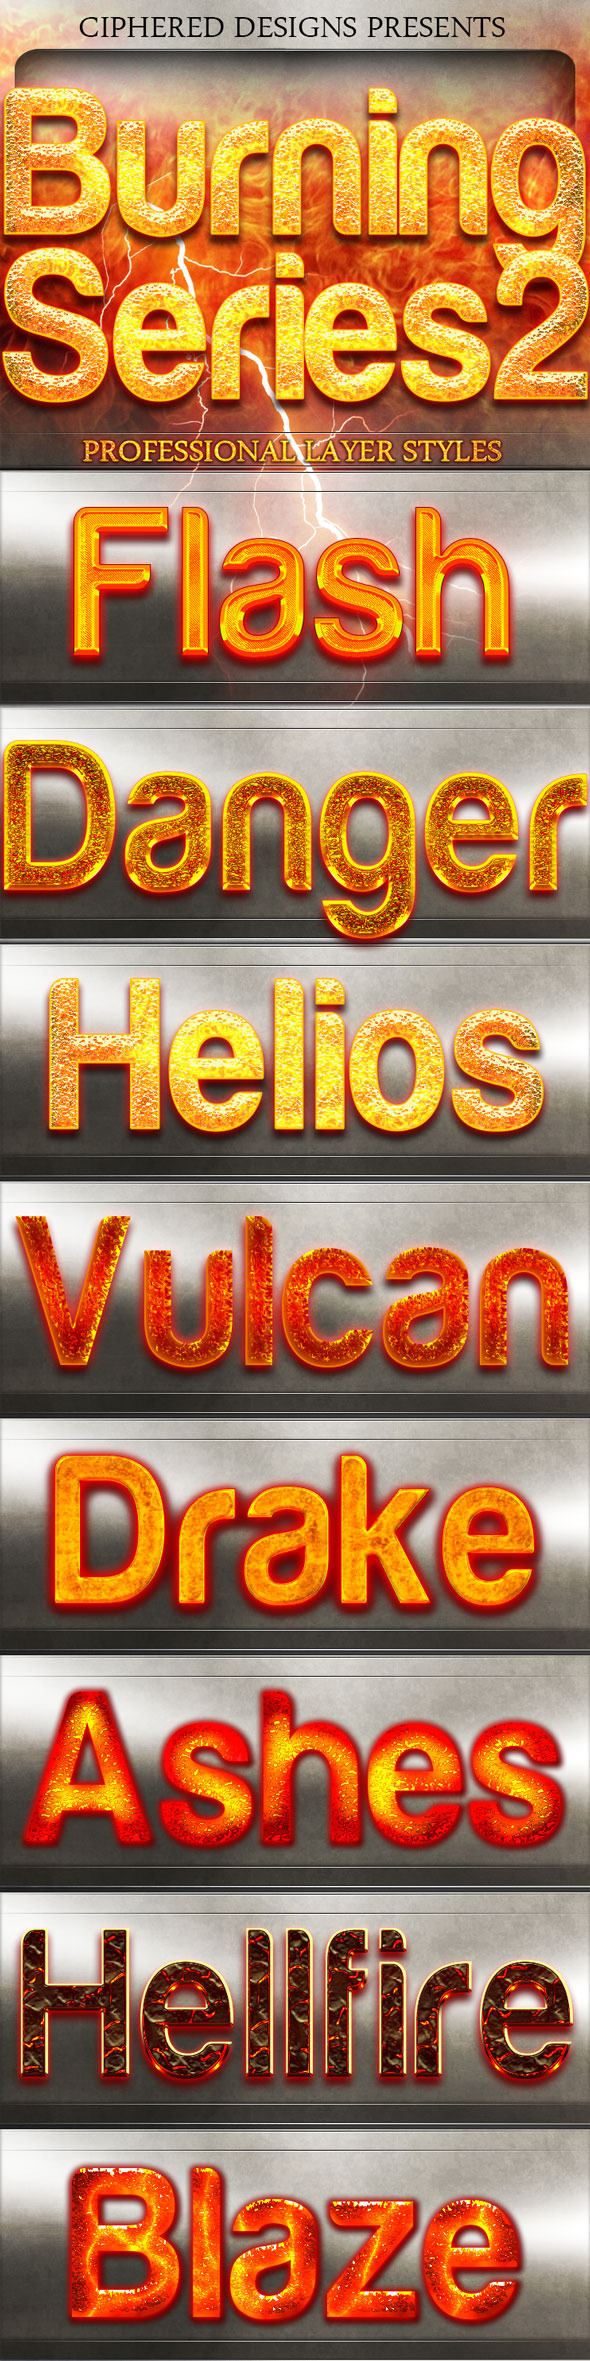 Burning Series 2 - Professional Layer Styles - Text Effects Styles